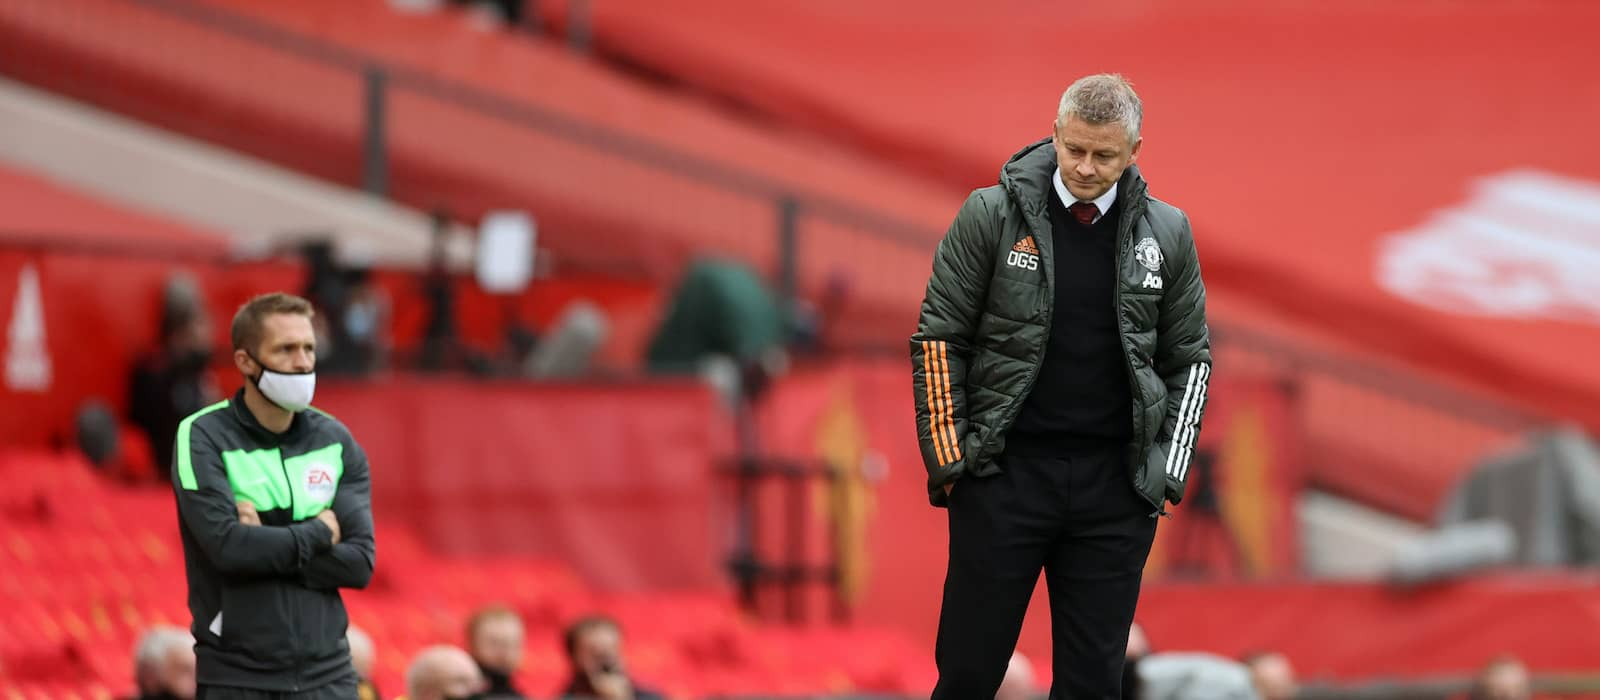 Man United players doubt whether Ole Gunnar Solskjaer is top coach